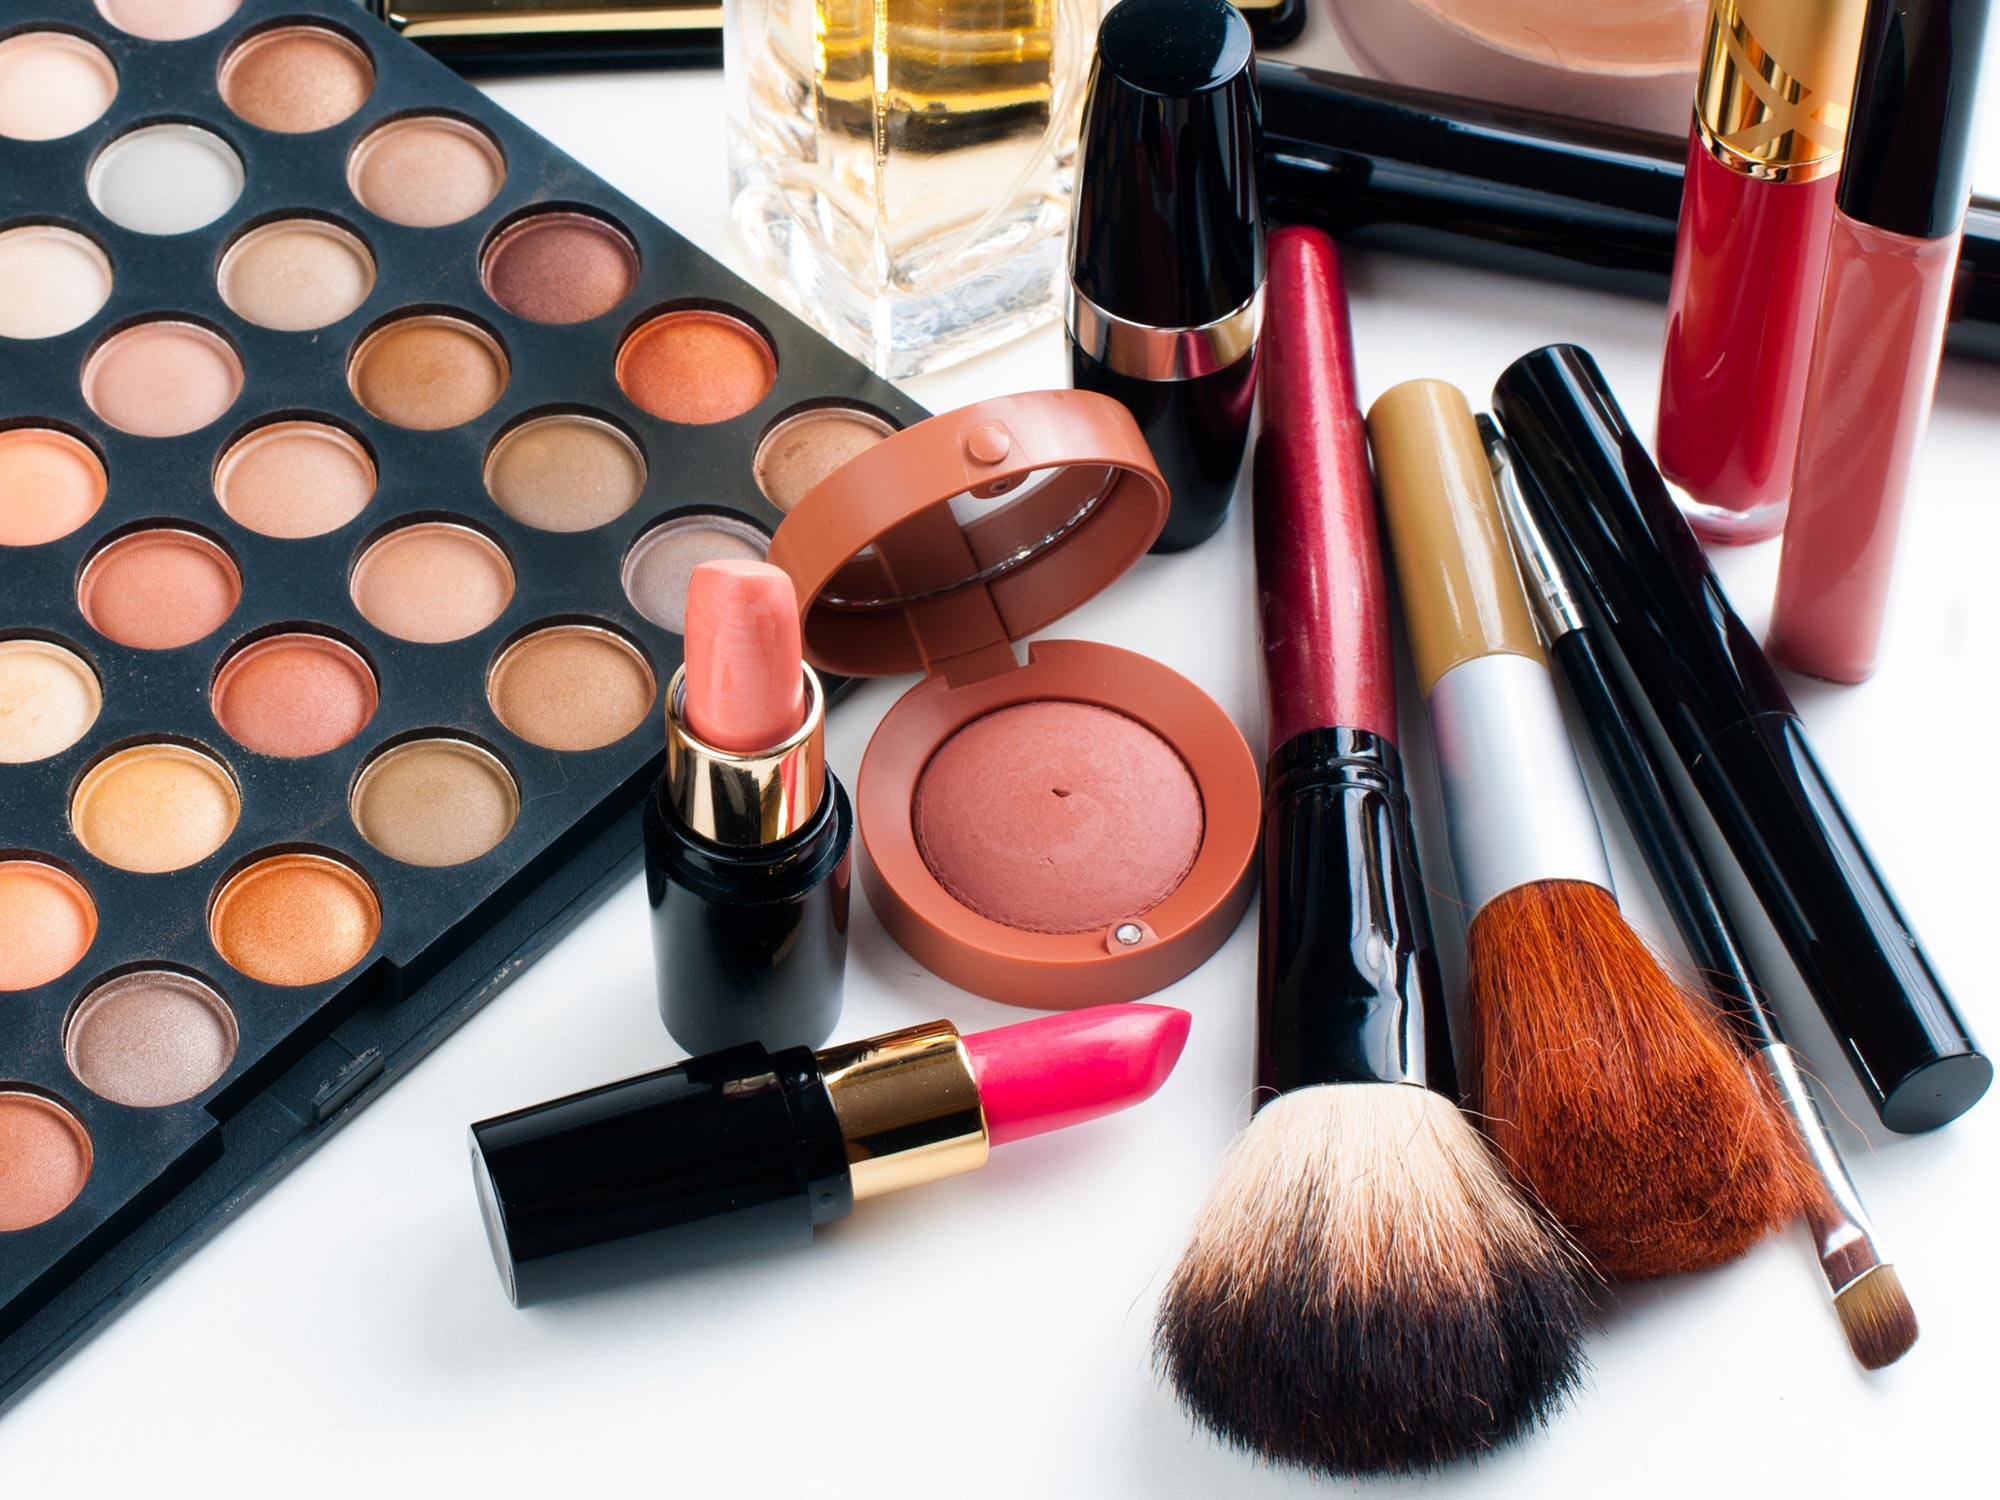 High Levels of Potentially Toxic PFAS Chemicals Detected in Makeup Sold in the U.S. and Canada